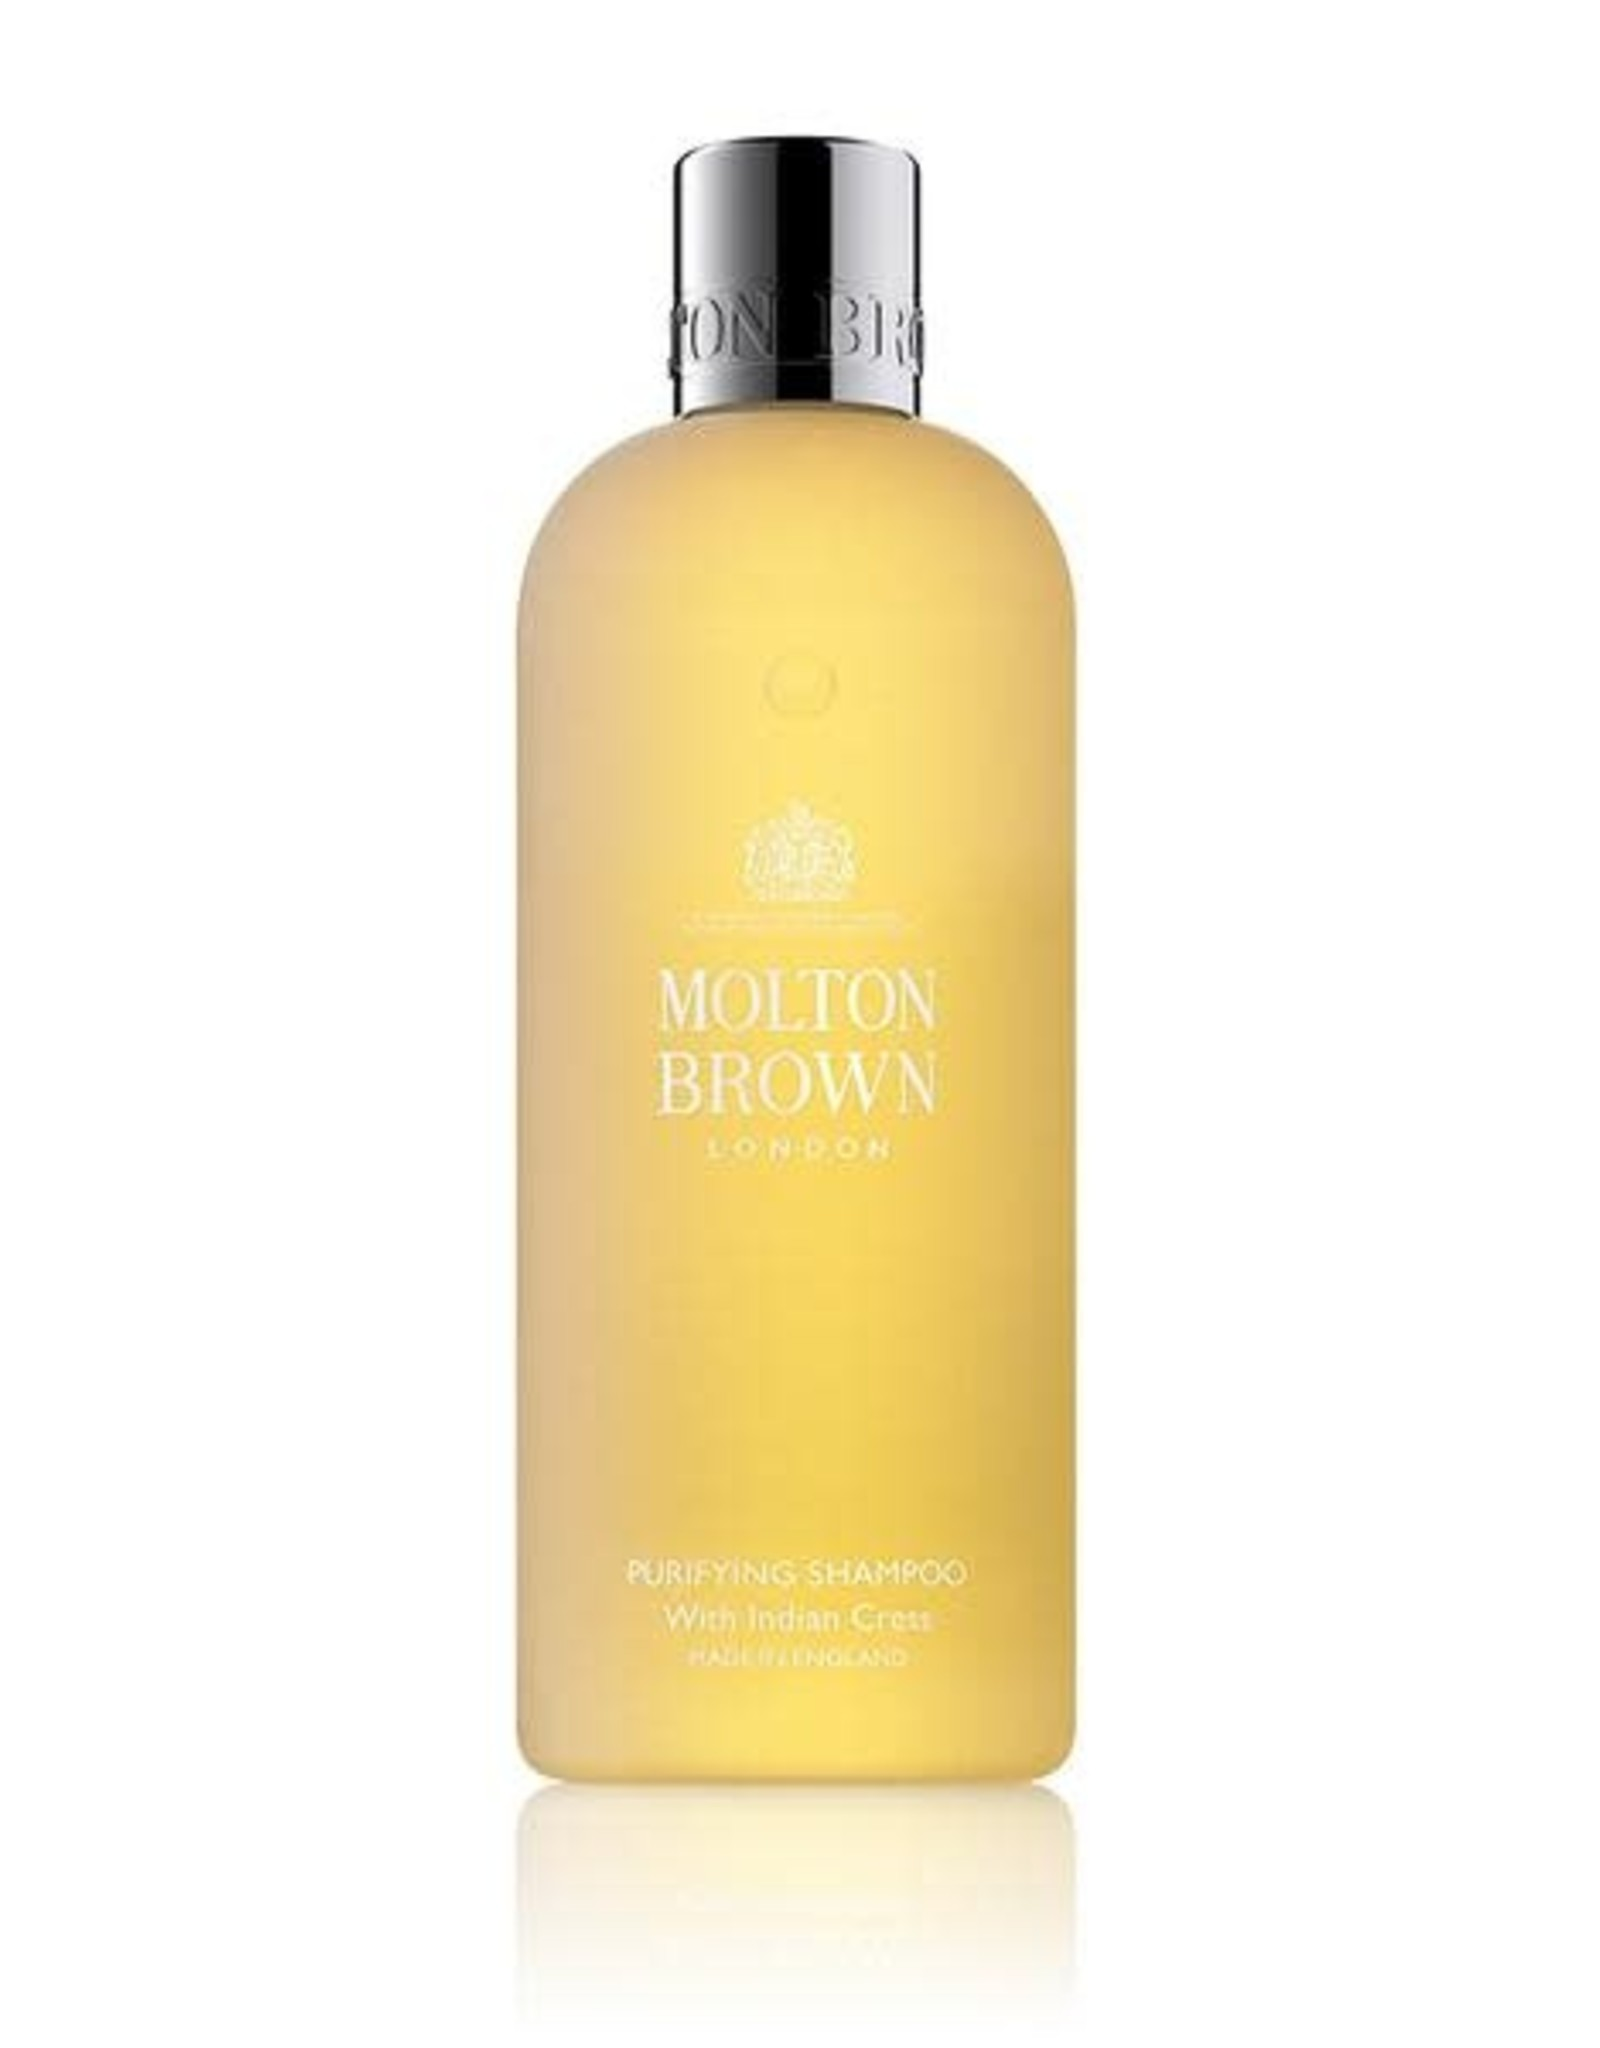 Molton Brown Gentle Purifying Shampoo with Indian Cress